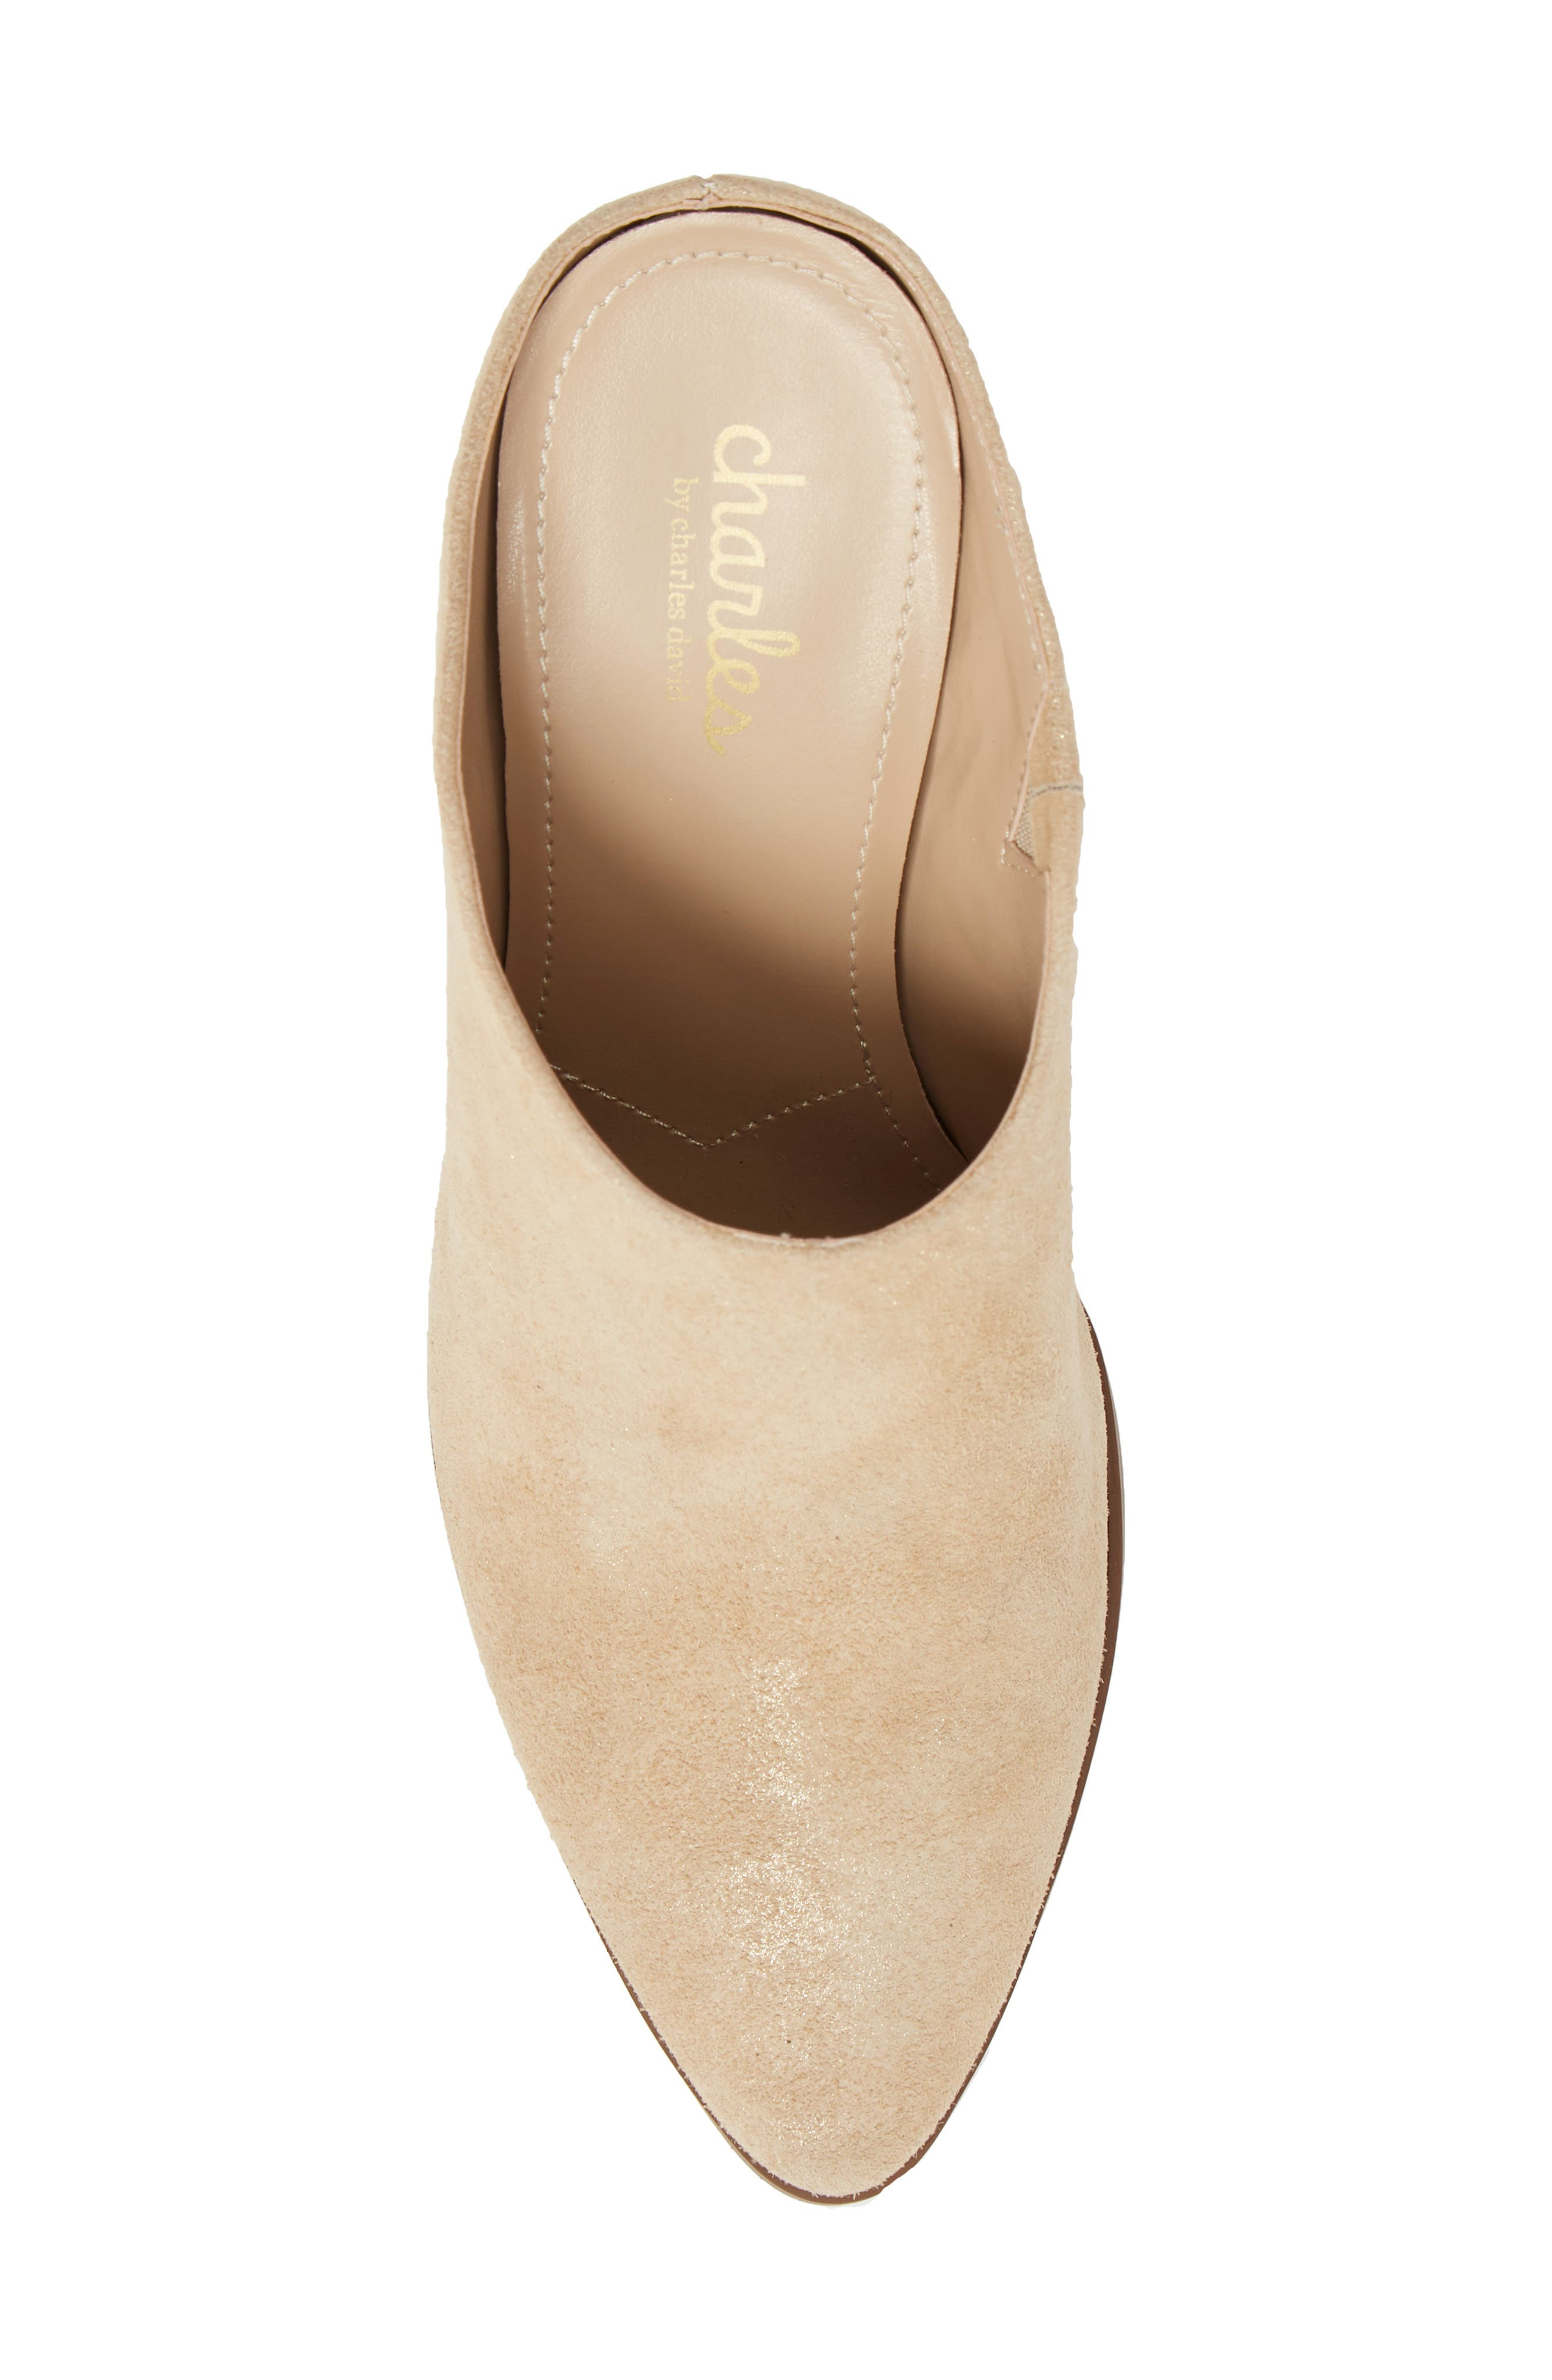 CHARLES BY CHARLES DAVID, Nico Mule, Alternate thumbnail 5, color, NUDE LIGHT GOLD SUEDE